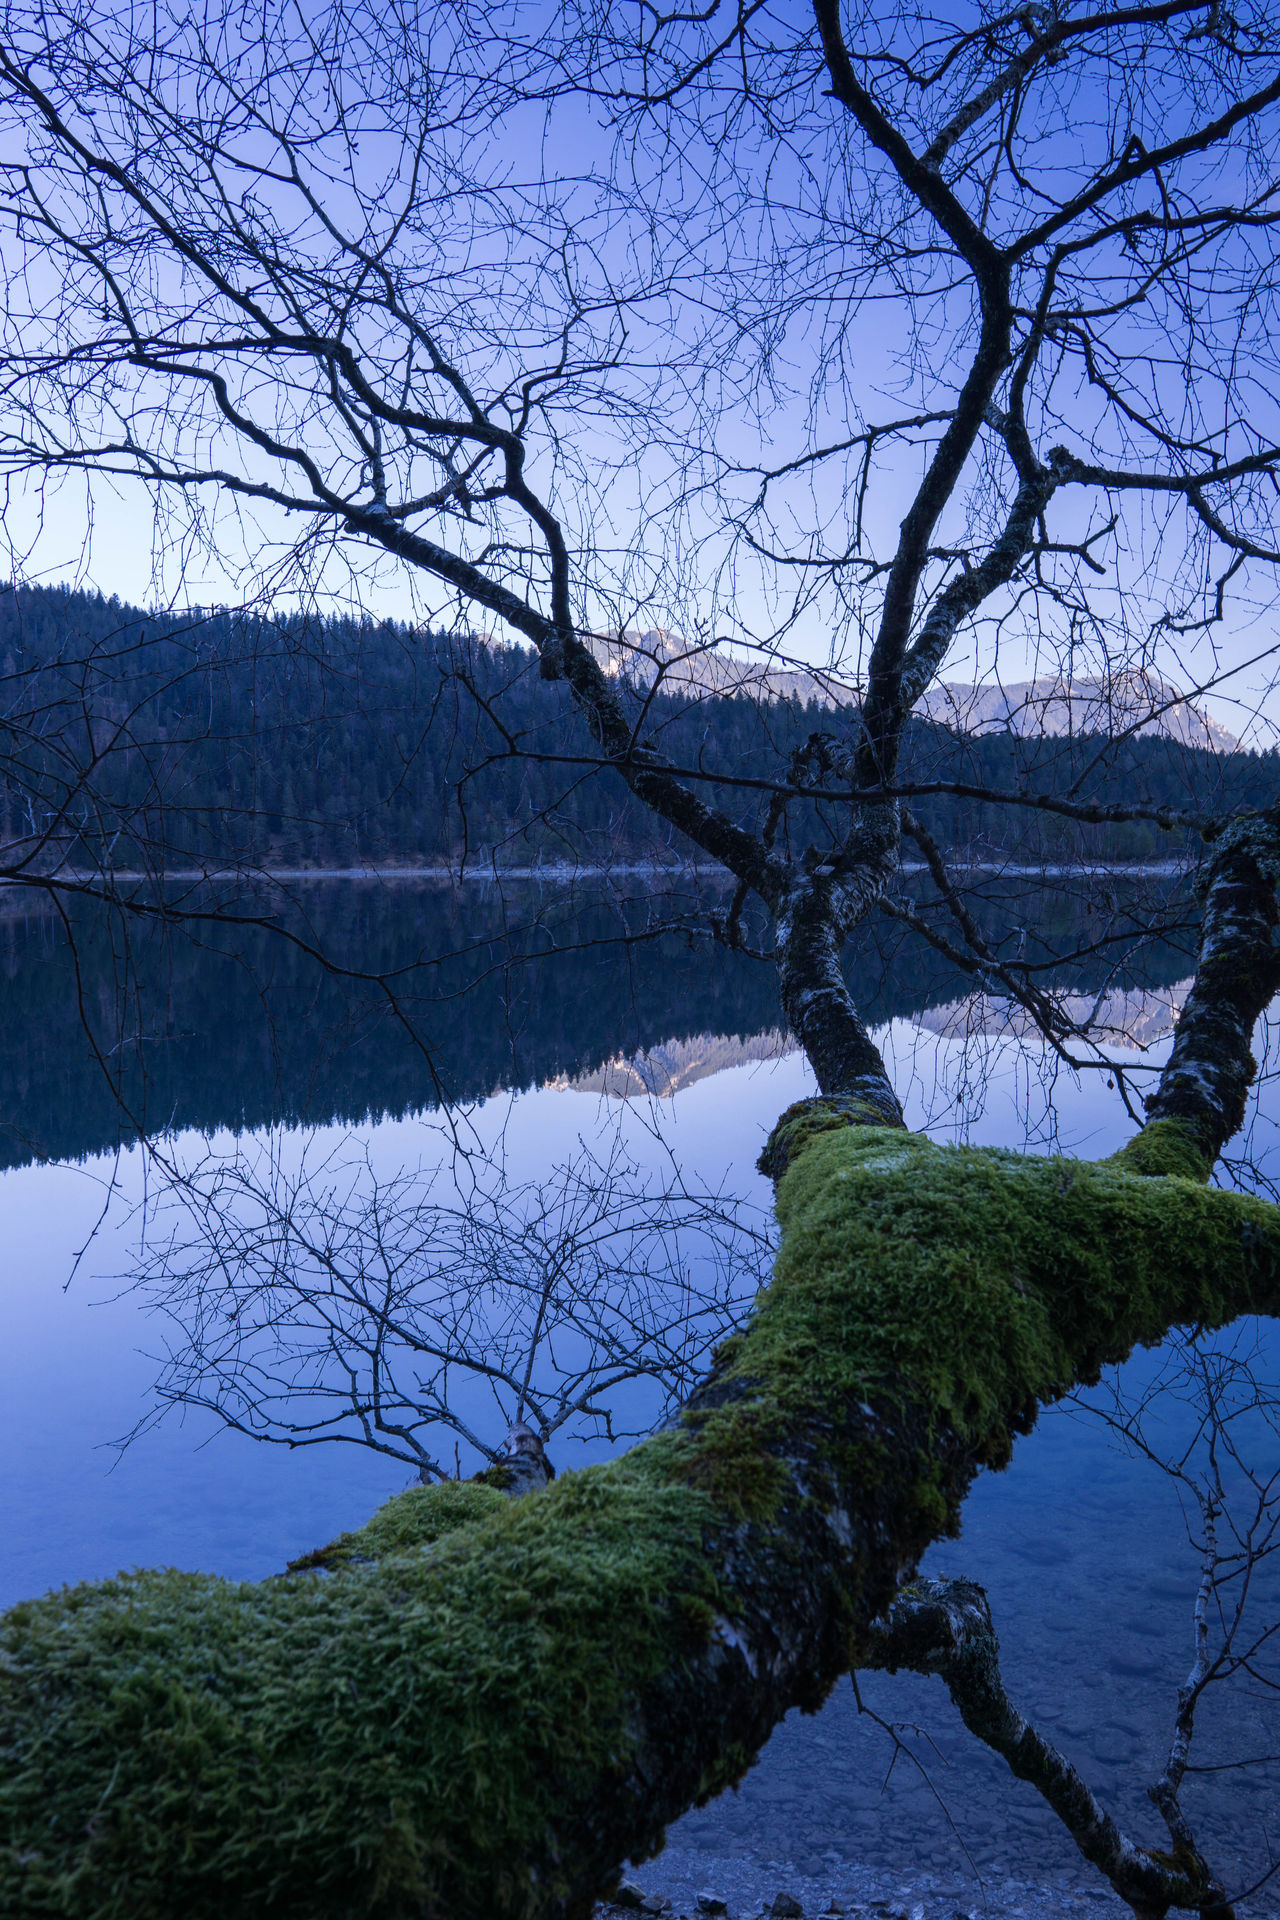 Alps Bare Tree Beauty In Nature Branch Day Eibsee Growth Lake Nature No People Outdoors Reflection Scenics Sky Tranquil Scene Tranquility Travel Destinations Tree Water Zugspitze Beautiful Nature